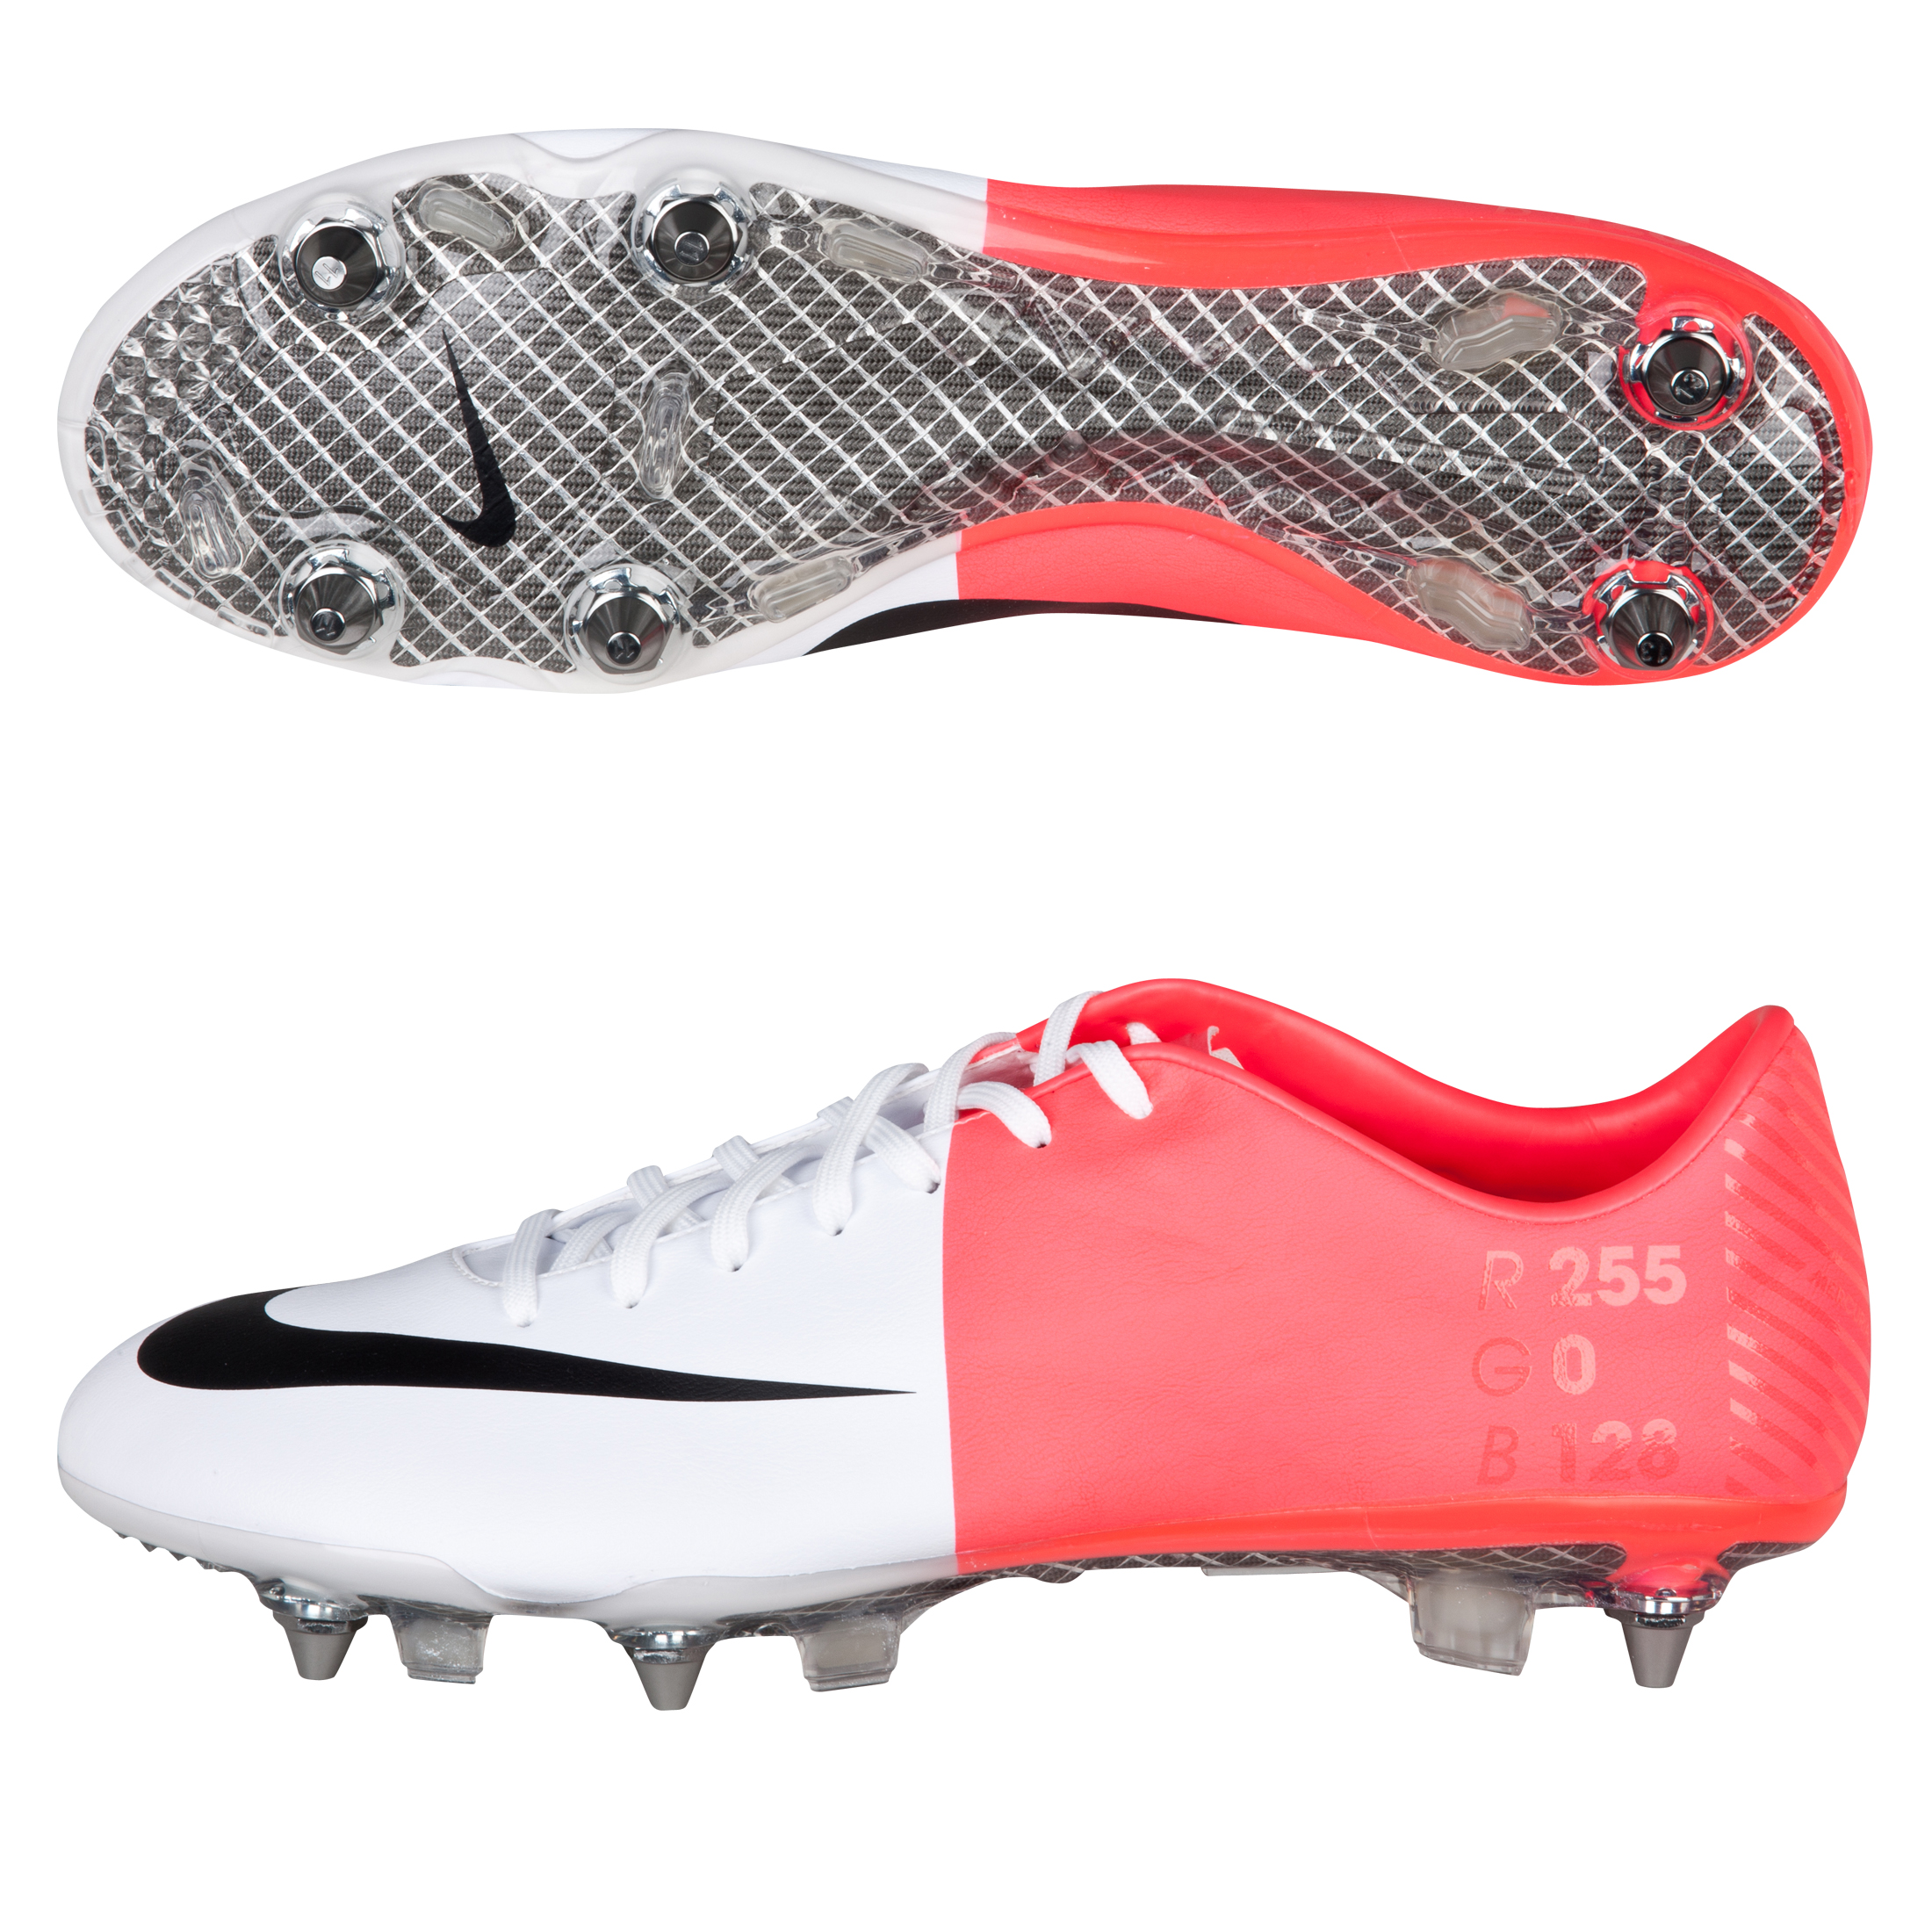 Mercurial Vapor VIII SG-Pro White/Black/Solar Red